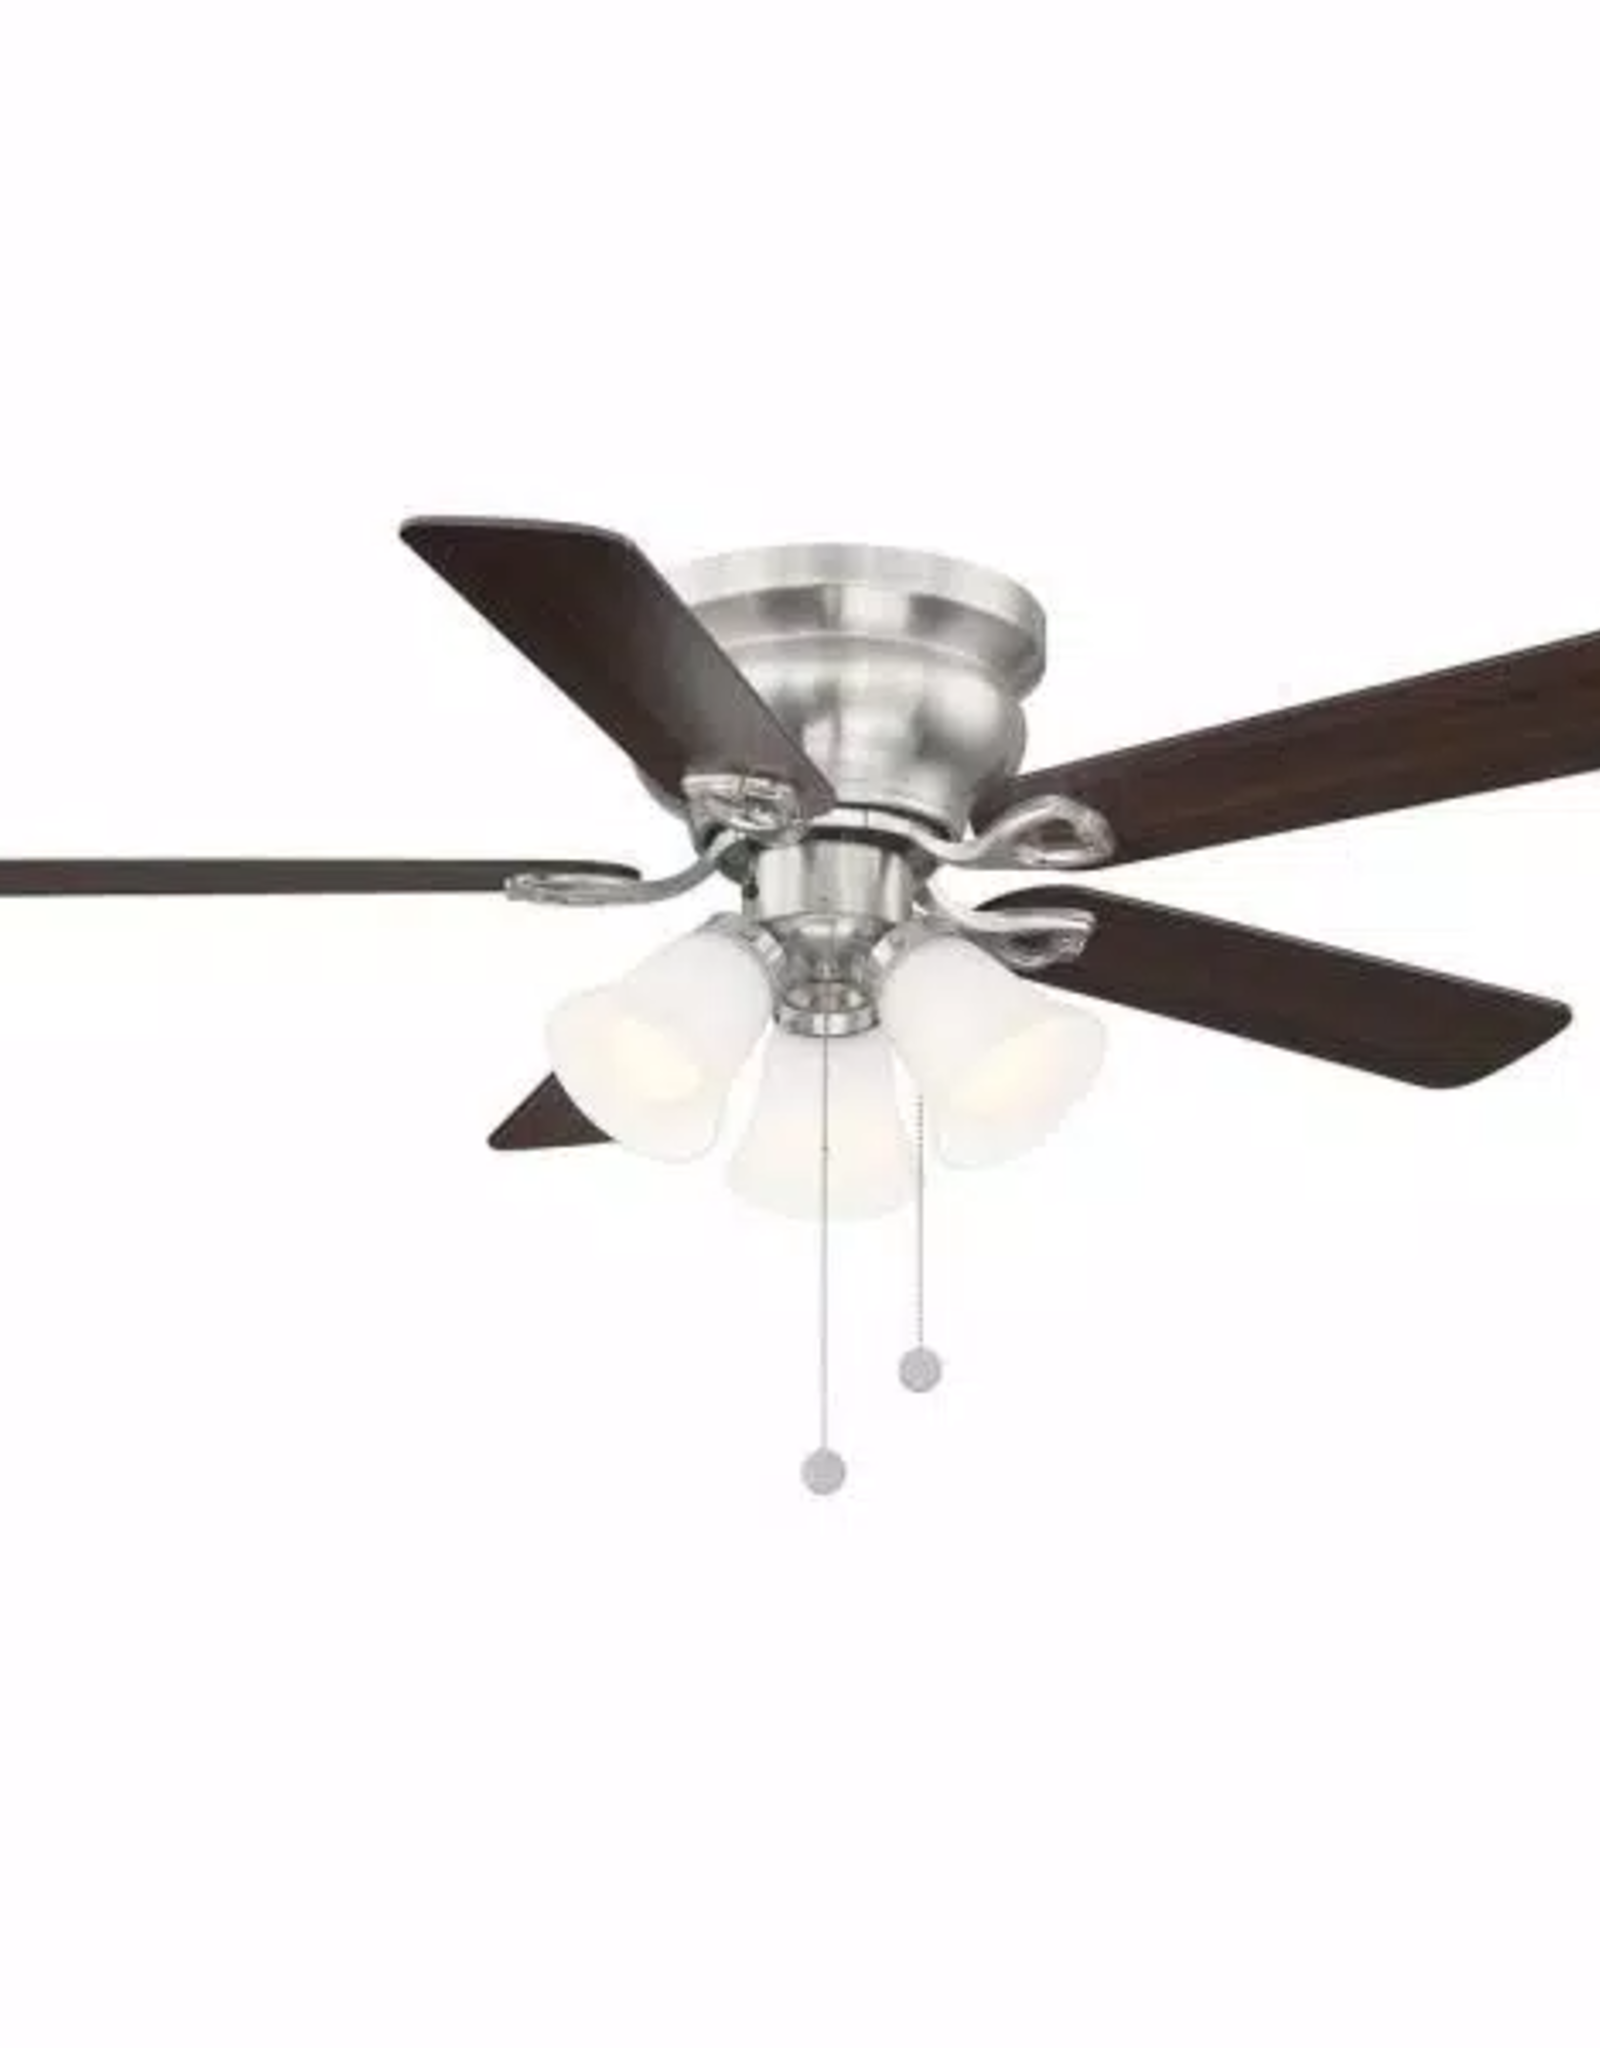 Clarkston Clarkston II 44 in. LED Indoor Brushed Nickel Ceiling Fan with Light Kit